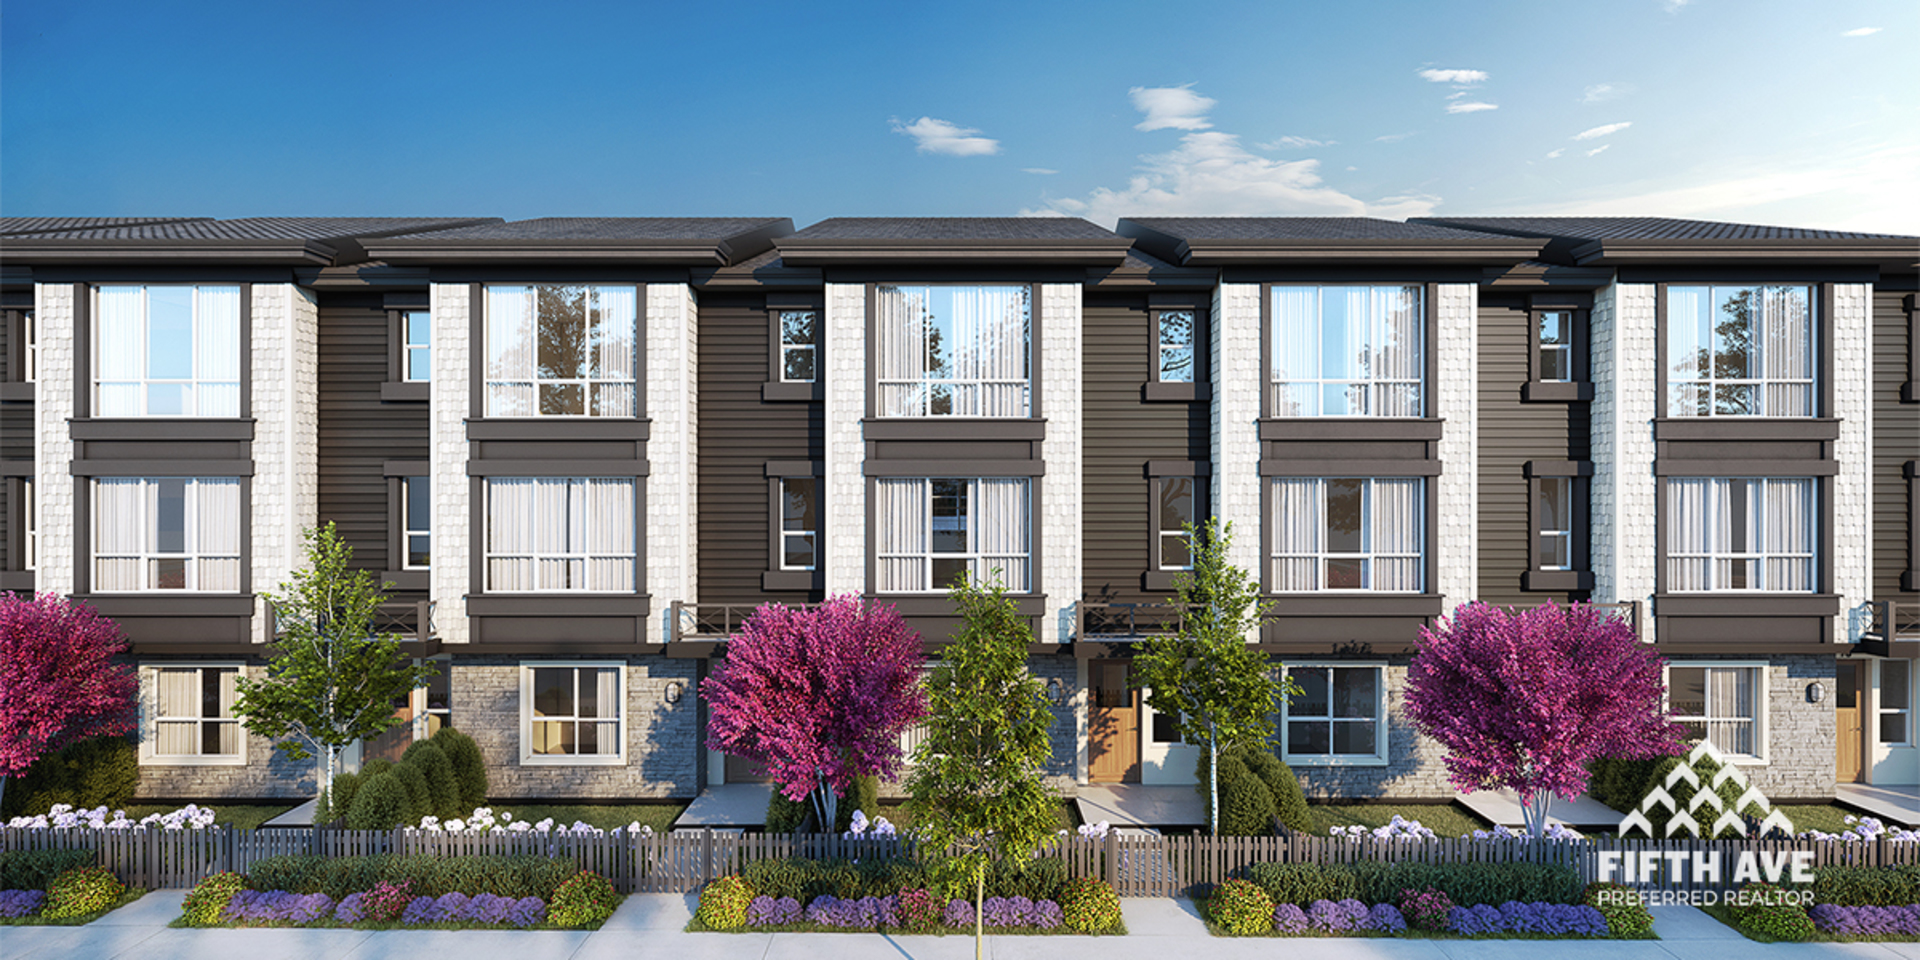 Clayton Street by Kleen Design at Clayton Street Townhomes (19255 72 Avenue, Clayton, Cloverdale)